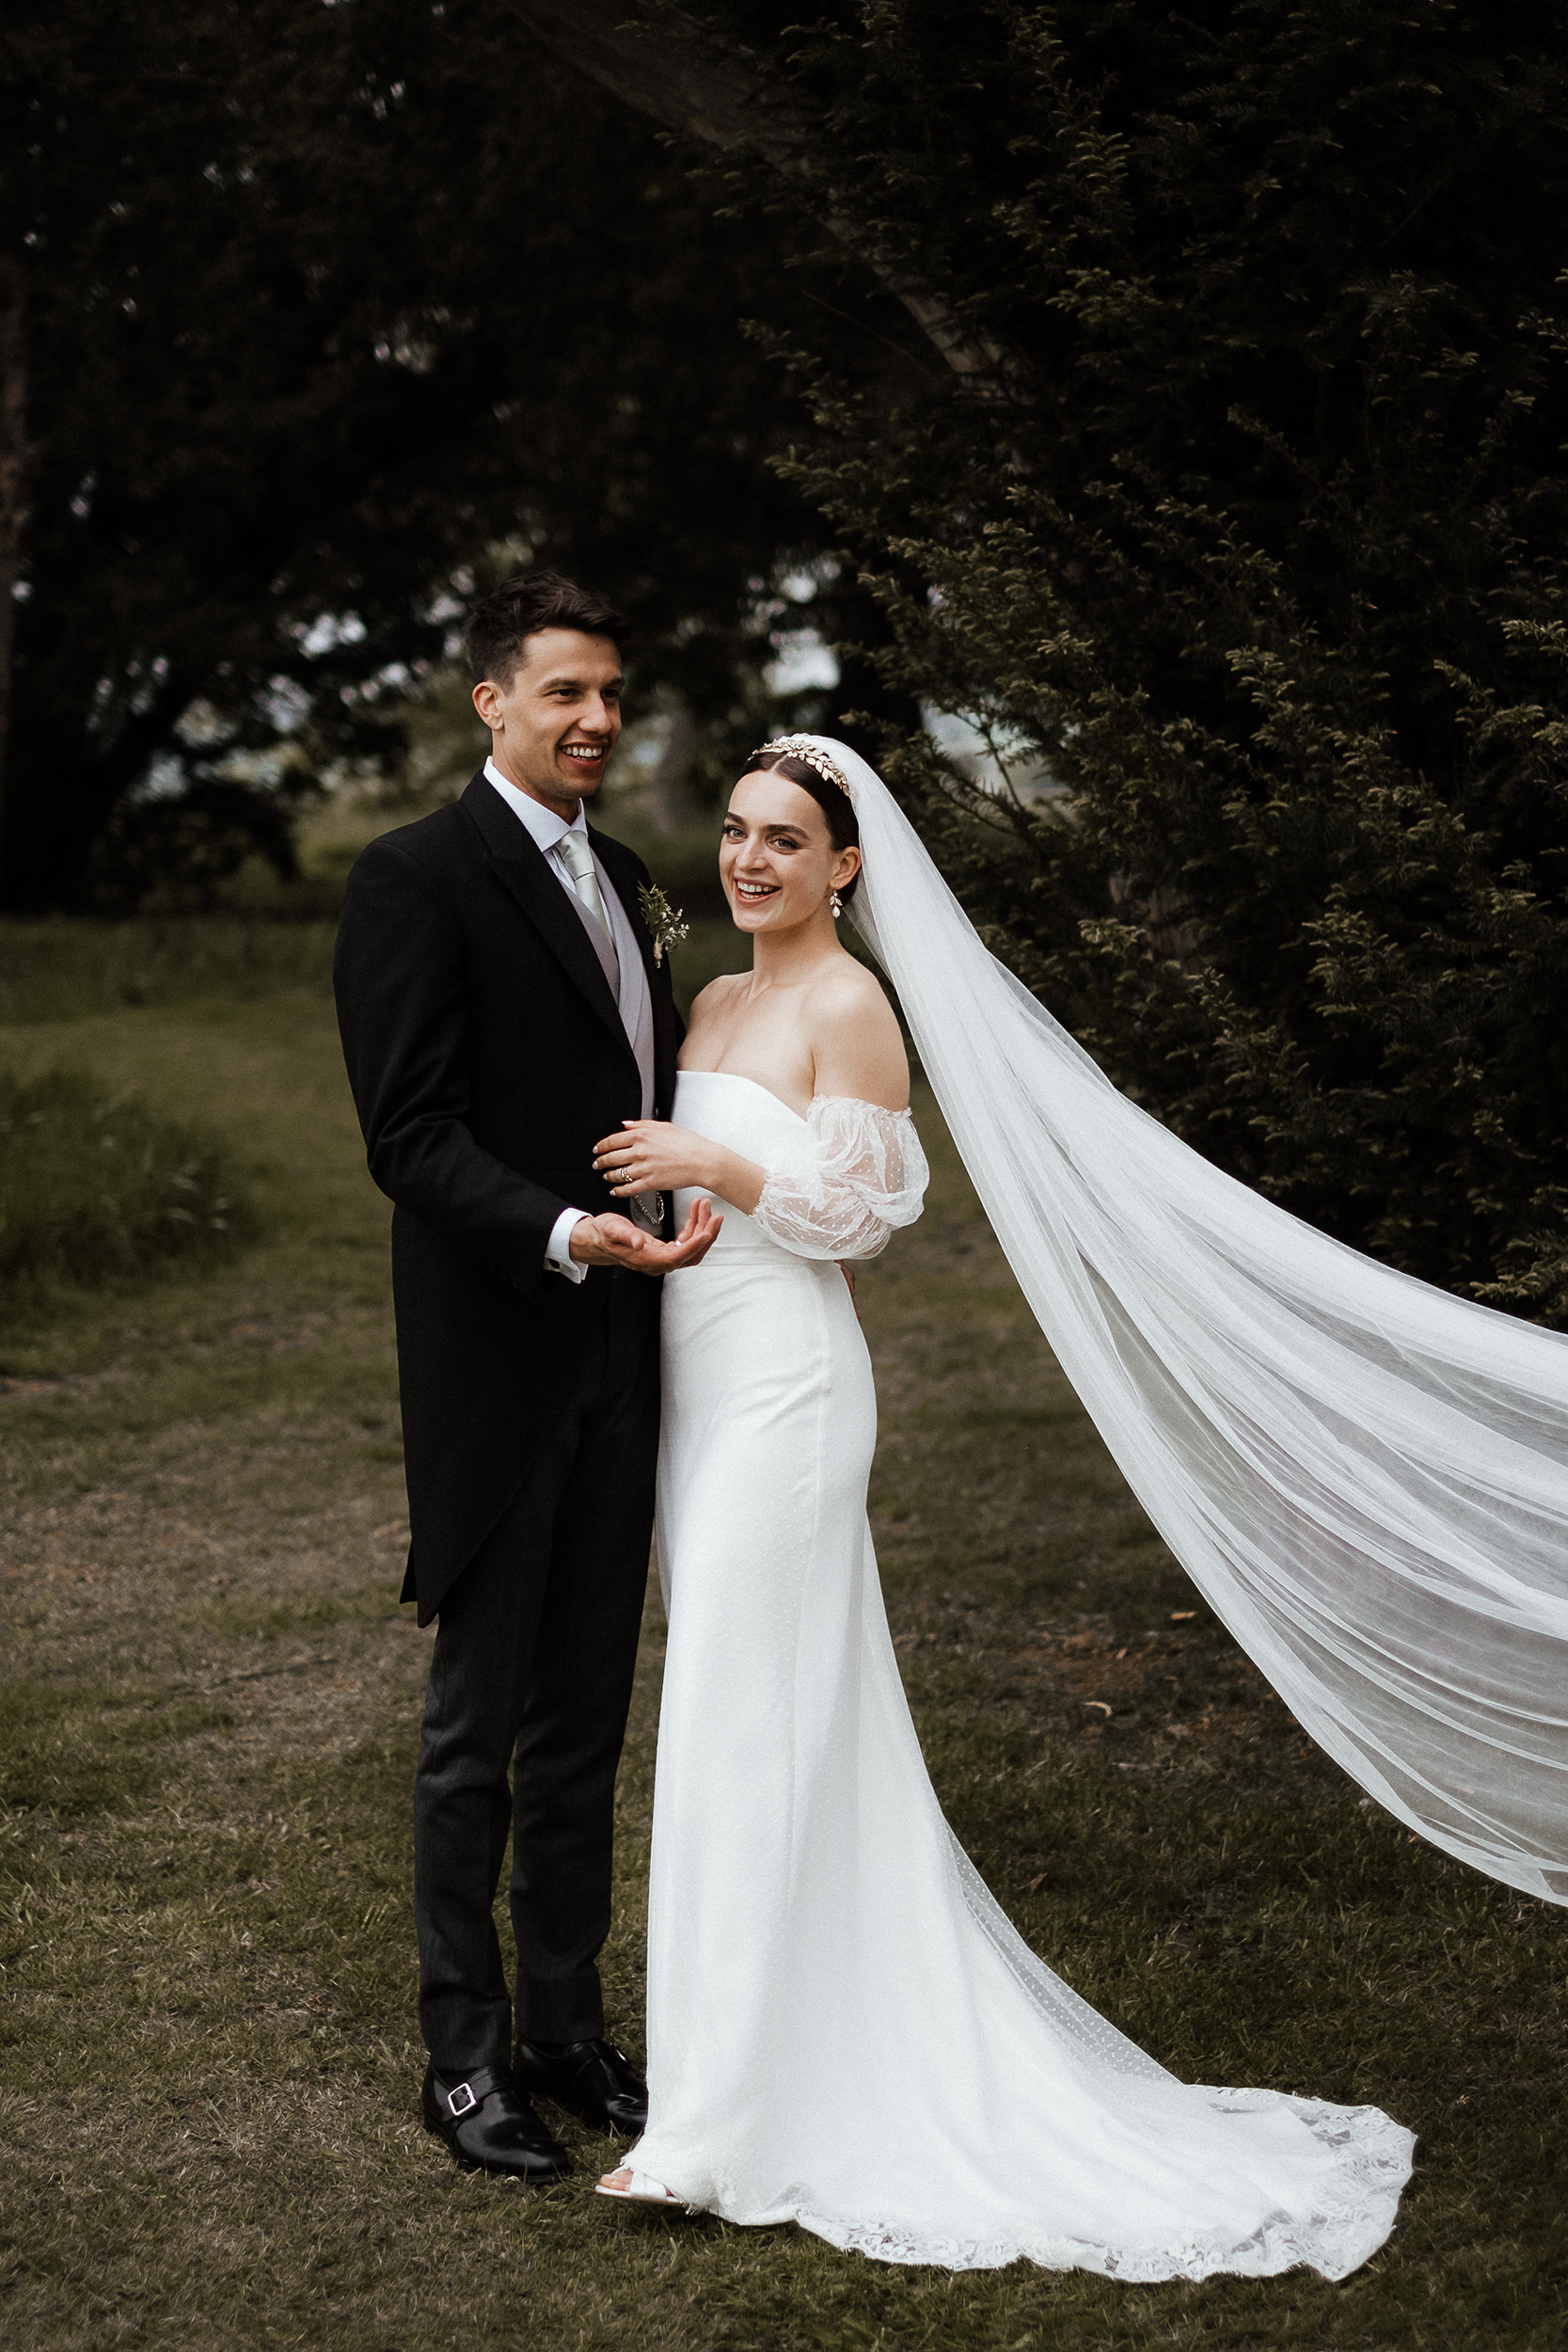 Chic Halfpenny London separates with statement sleeves and a bespoke leafy Tilly Thomas Lux crown for a fashion forward bride